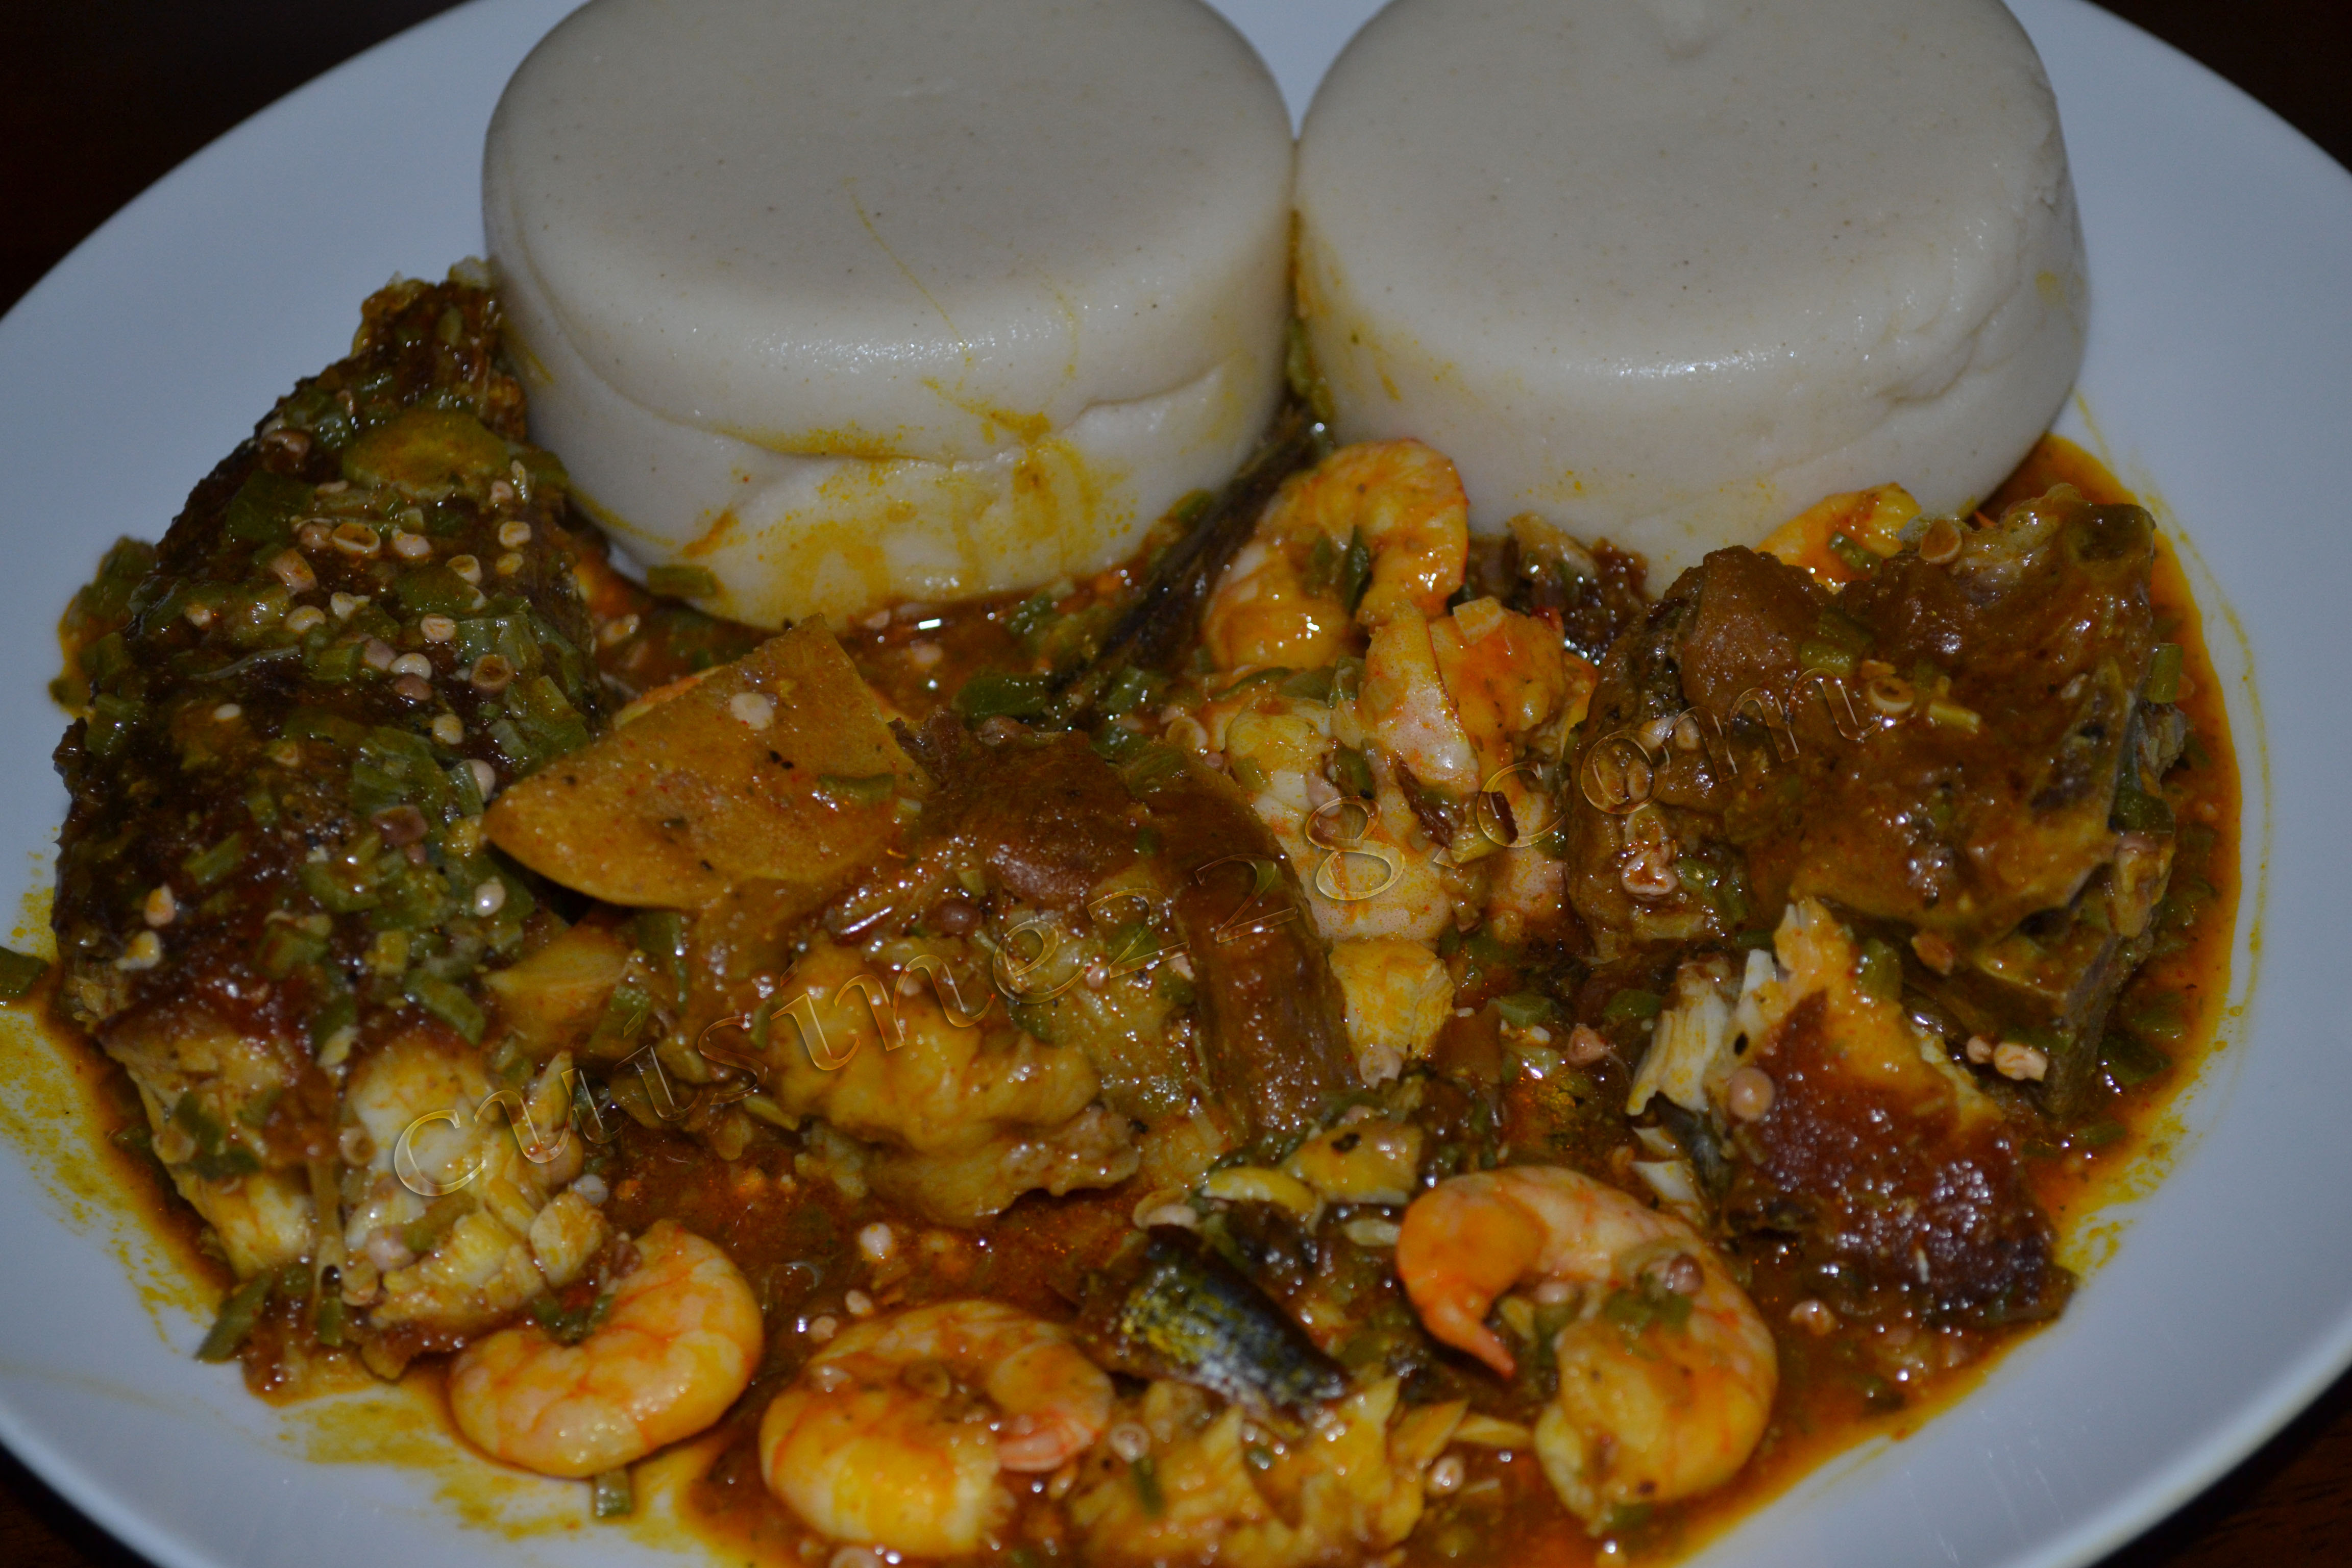 Food fun friday west african pescetarian cuisine ngozi cole for Authentic african cuisine from ghana